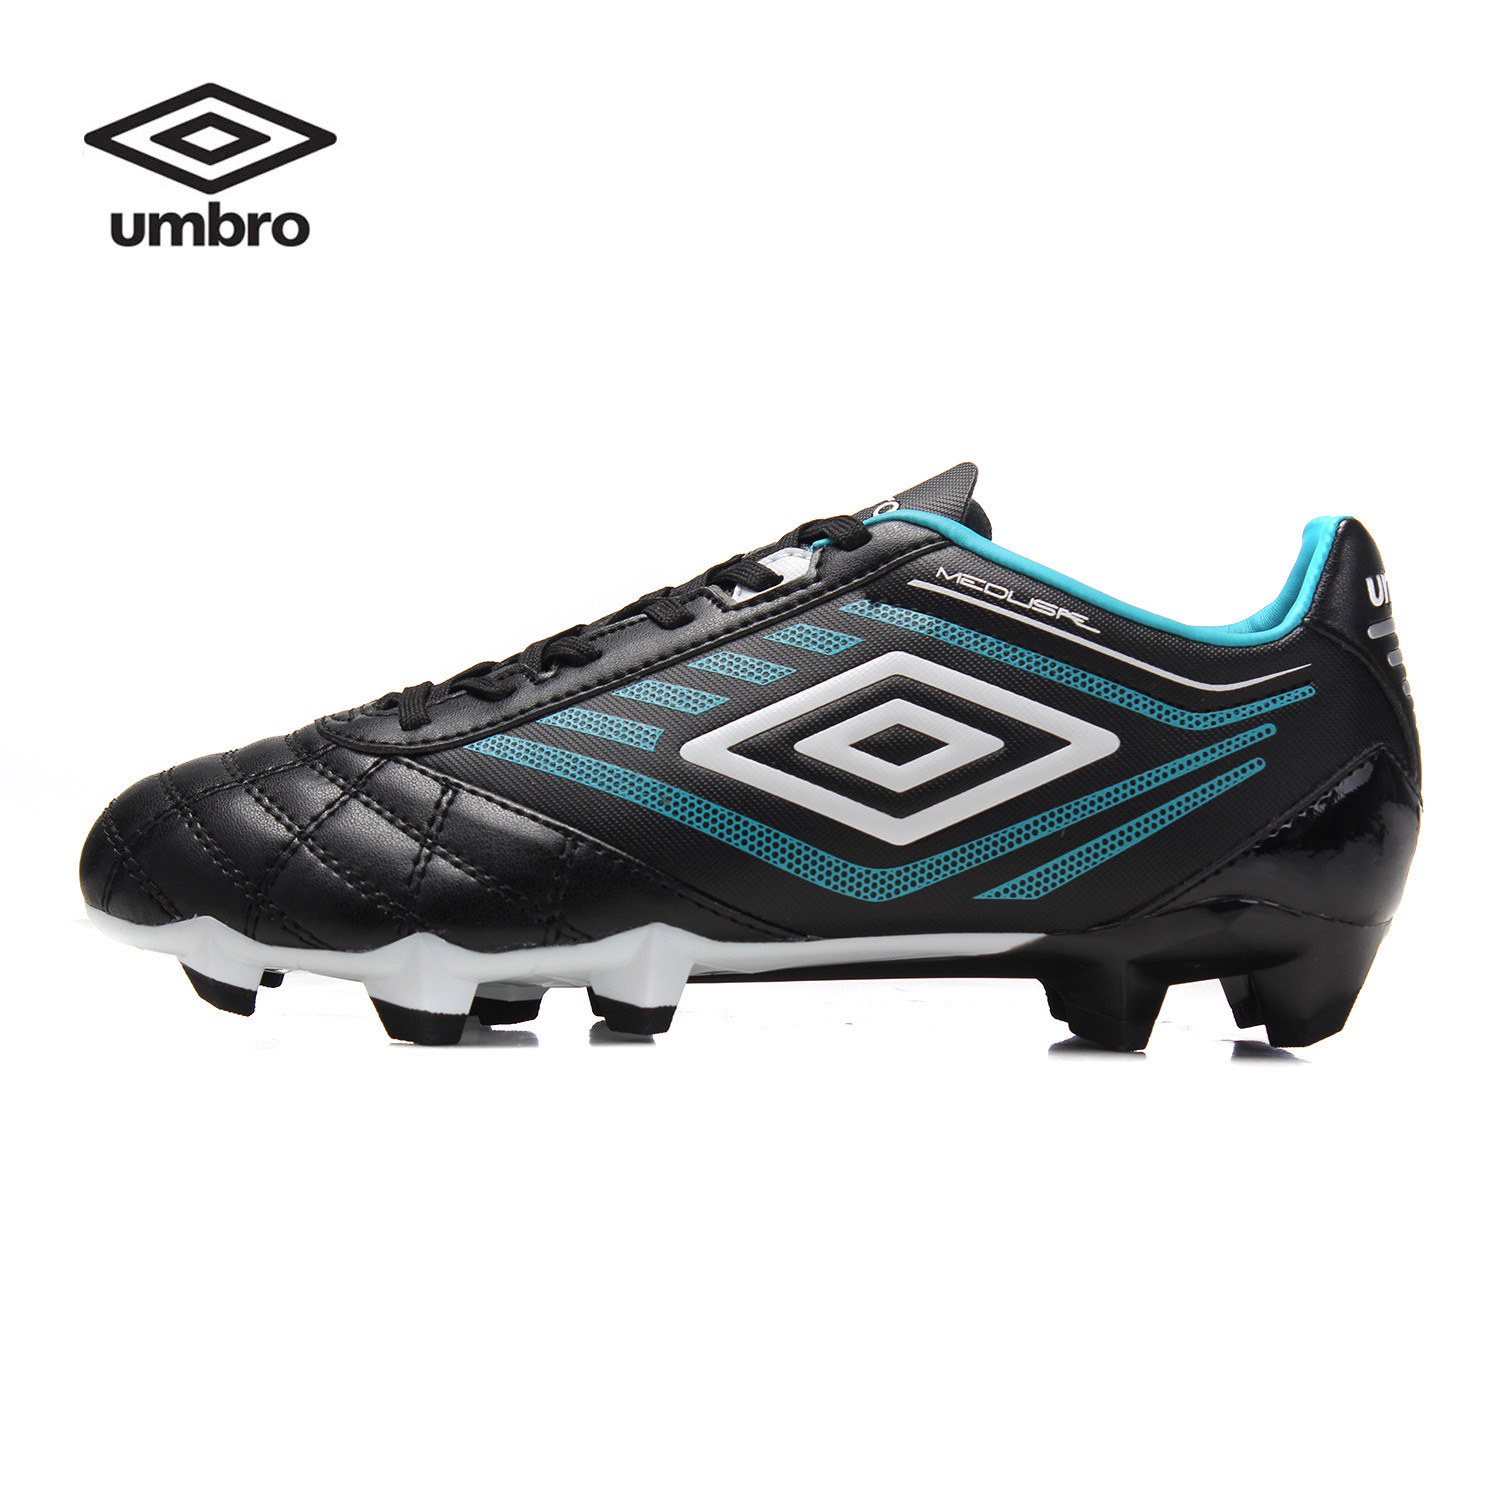 Umbro Football Mens Shoes HG Rubber Bottom Non-slip Professional Competition Training Football Boots Shoes For Soccer Ucb90139 umbro new men hard groud professional training sports football shoes soccer boots men spike shoes ucb90137